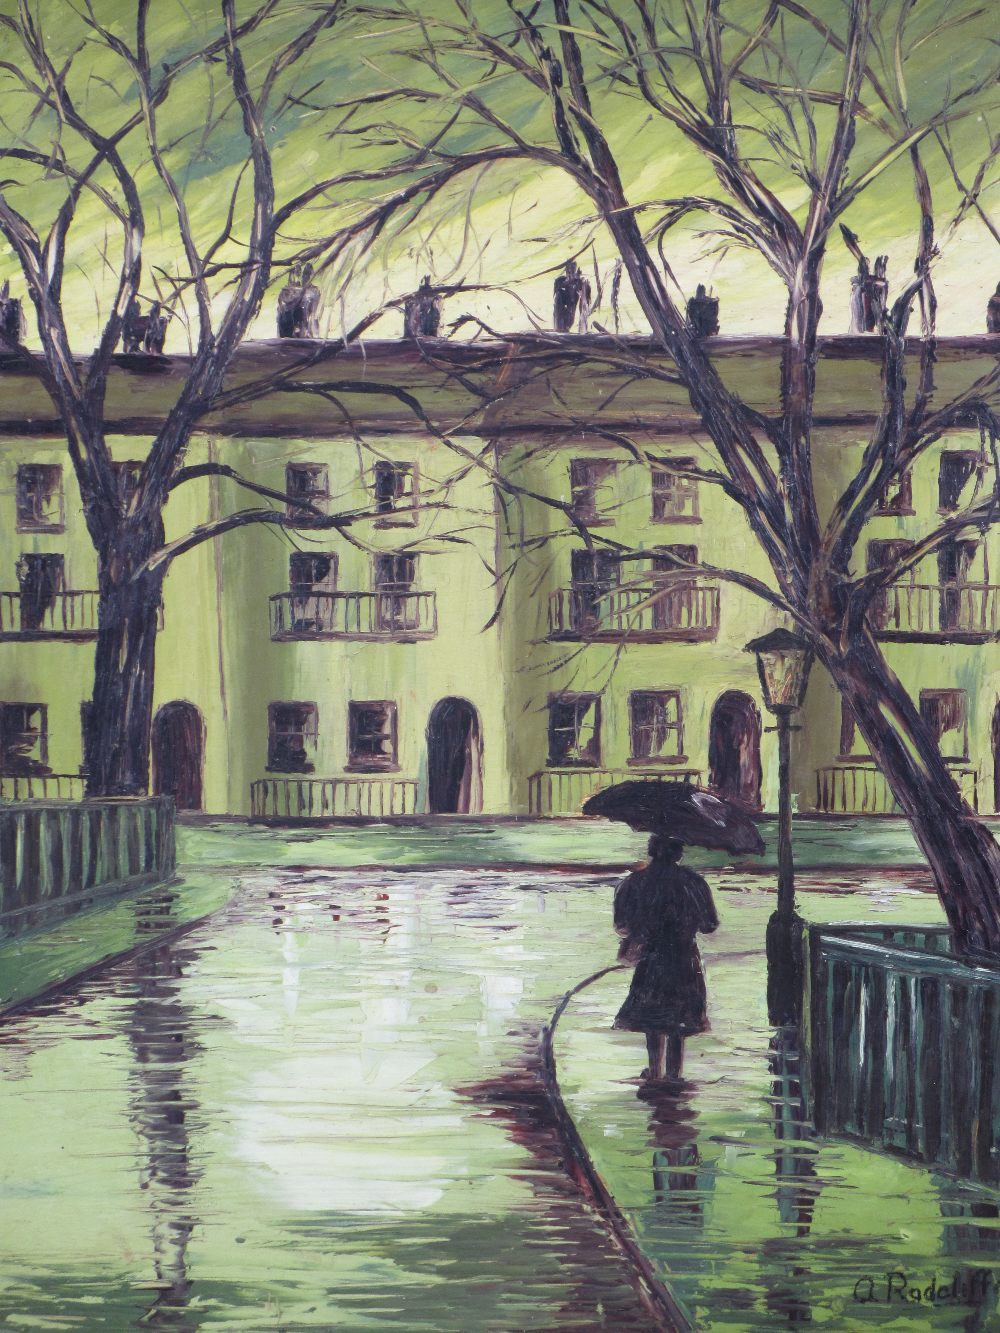 A RADCLIFFE palette knife acrylic - rainy town scene, dated verso 1977, 52 x 41cms and two oils on - Image 2 of 5